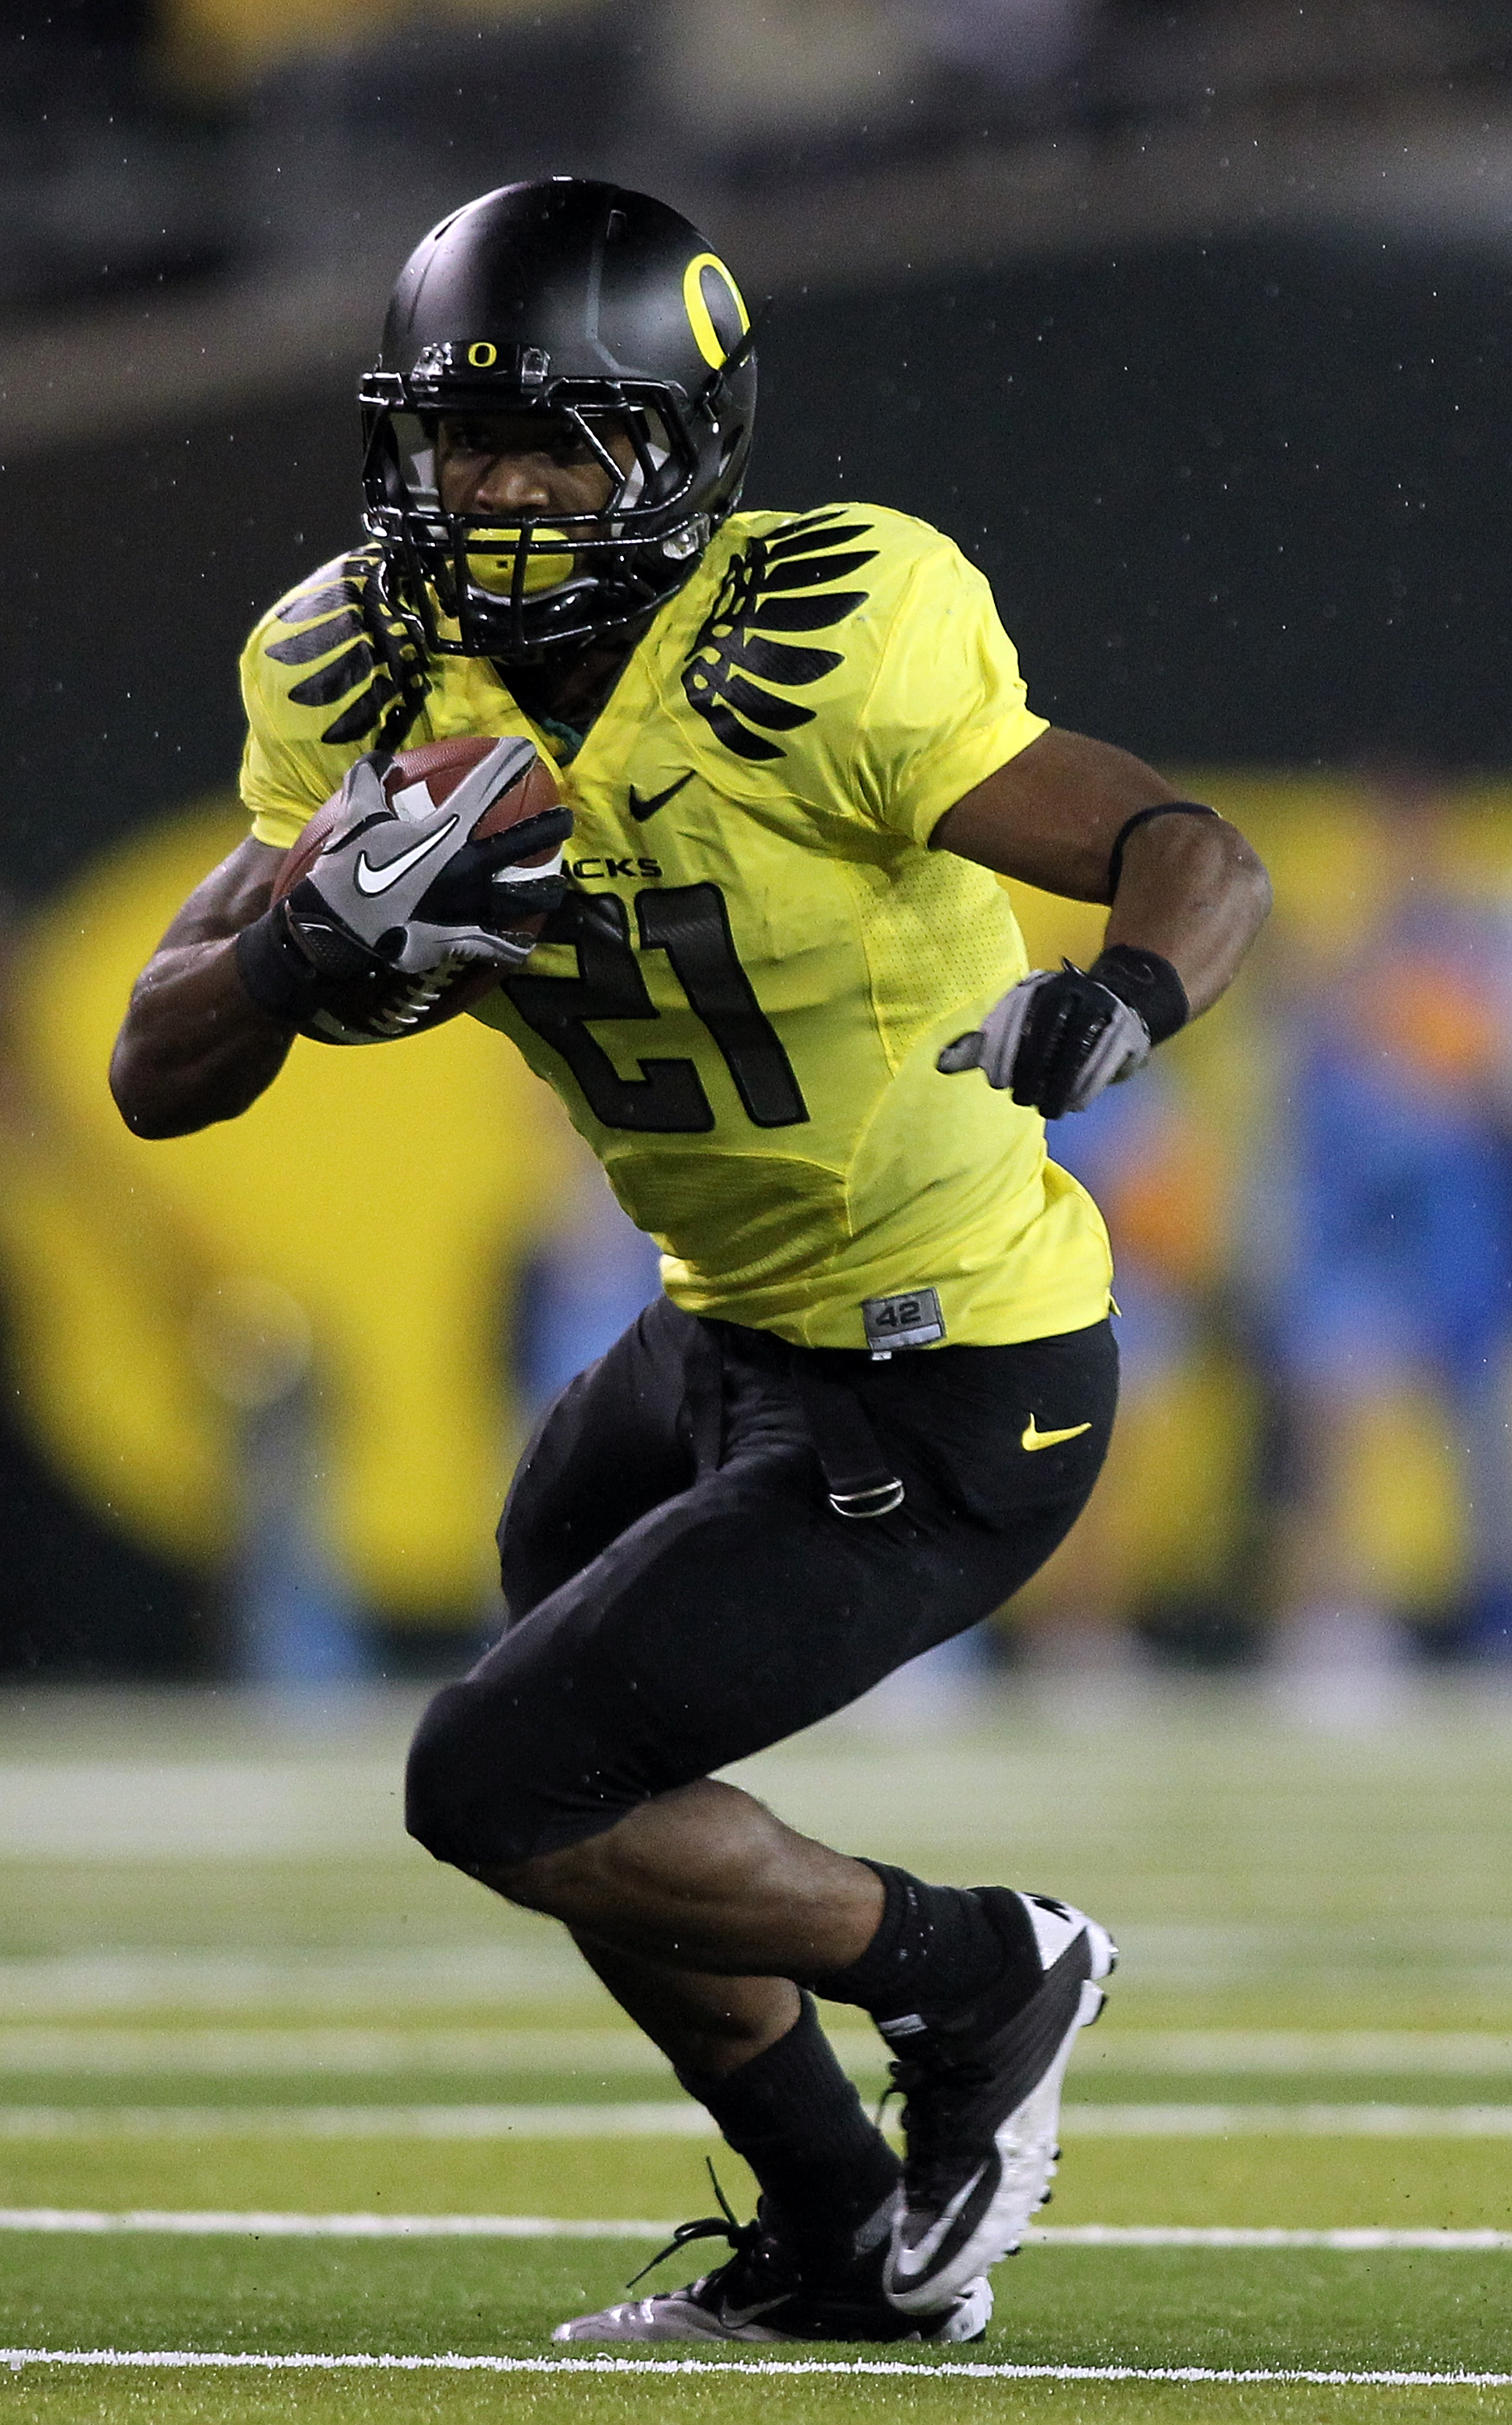 EUGENE, OR - OCTOBER 21:  LaMichael James #21 of the Oregon Ducks runs the ball against the UCLA Bruins on October 21, 2010 at the Autzen Stadium in Eugene, Oregon.  (Photo by Jonathan Ferrey/Getty Images)